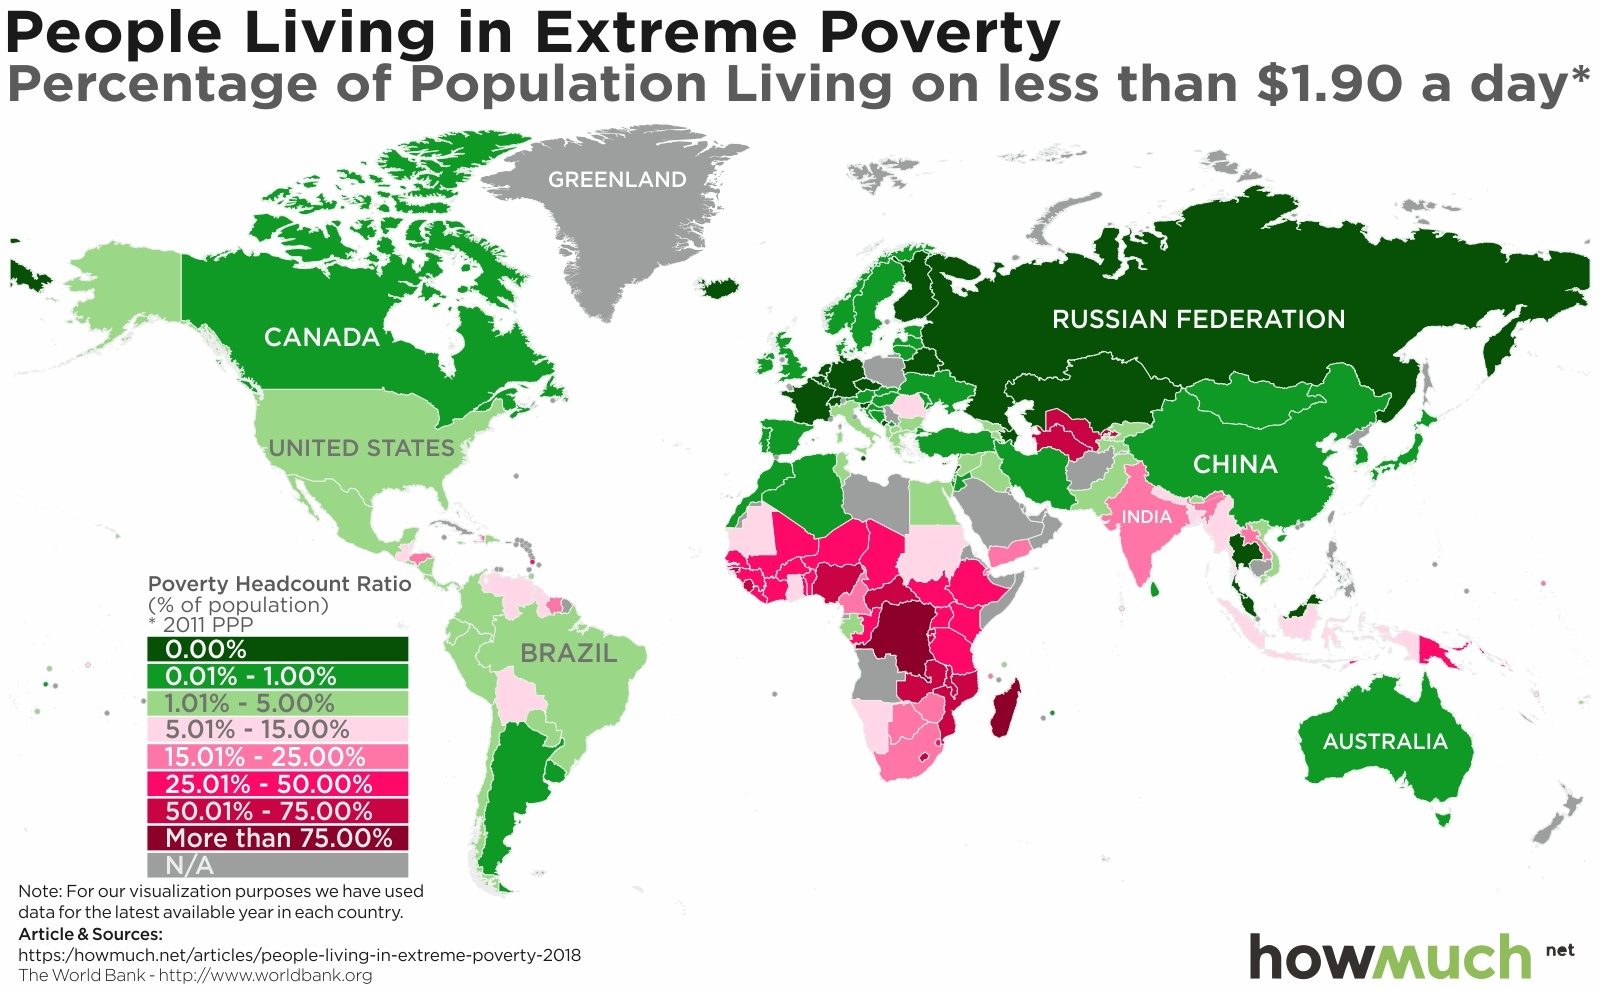 Australia Map In World.Mapping Extreme Poverty Around The World